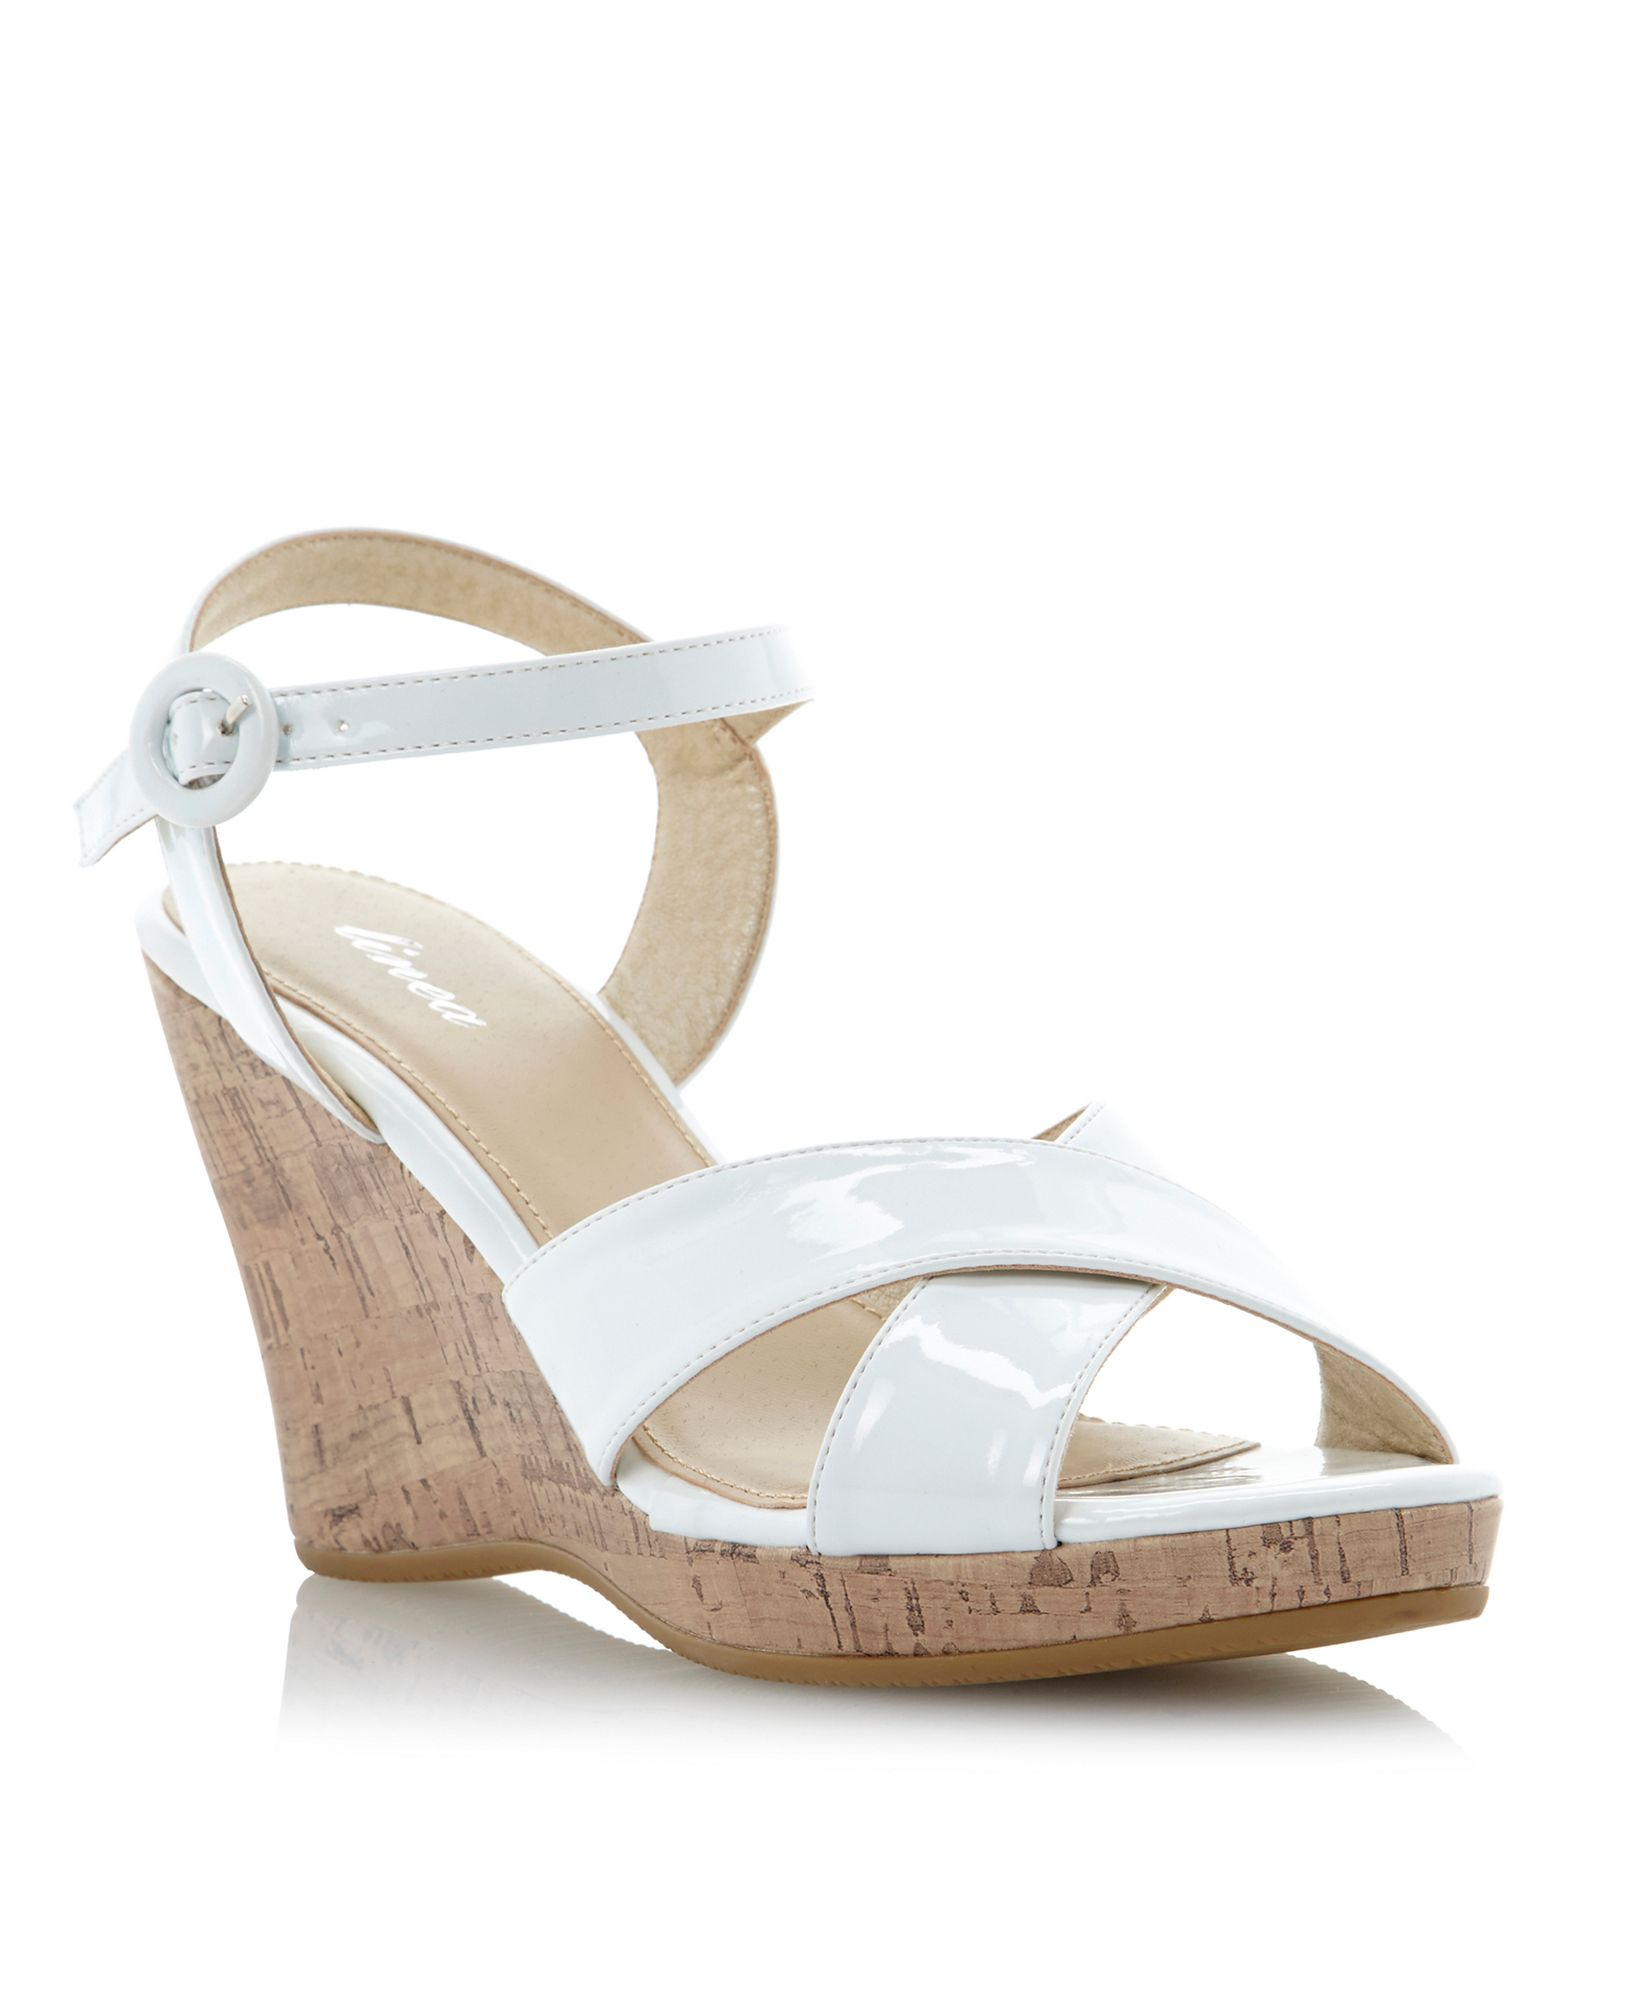 Wedges. No matter the season or the latest trends, wedges just never seem to go out of style. Here at GoJane, we love them in any form, and we always carry the latest wedges .